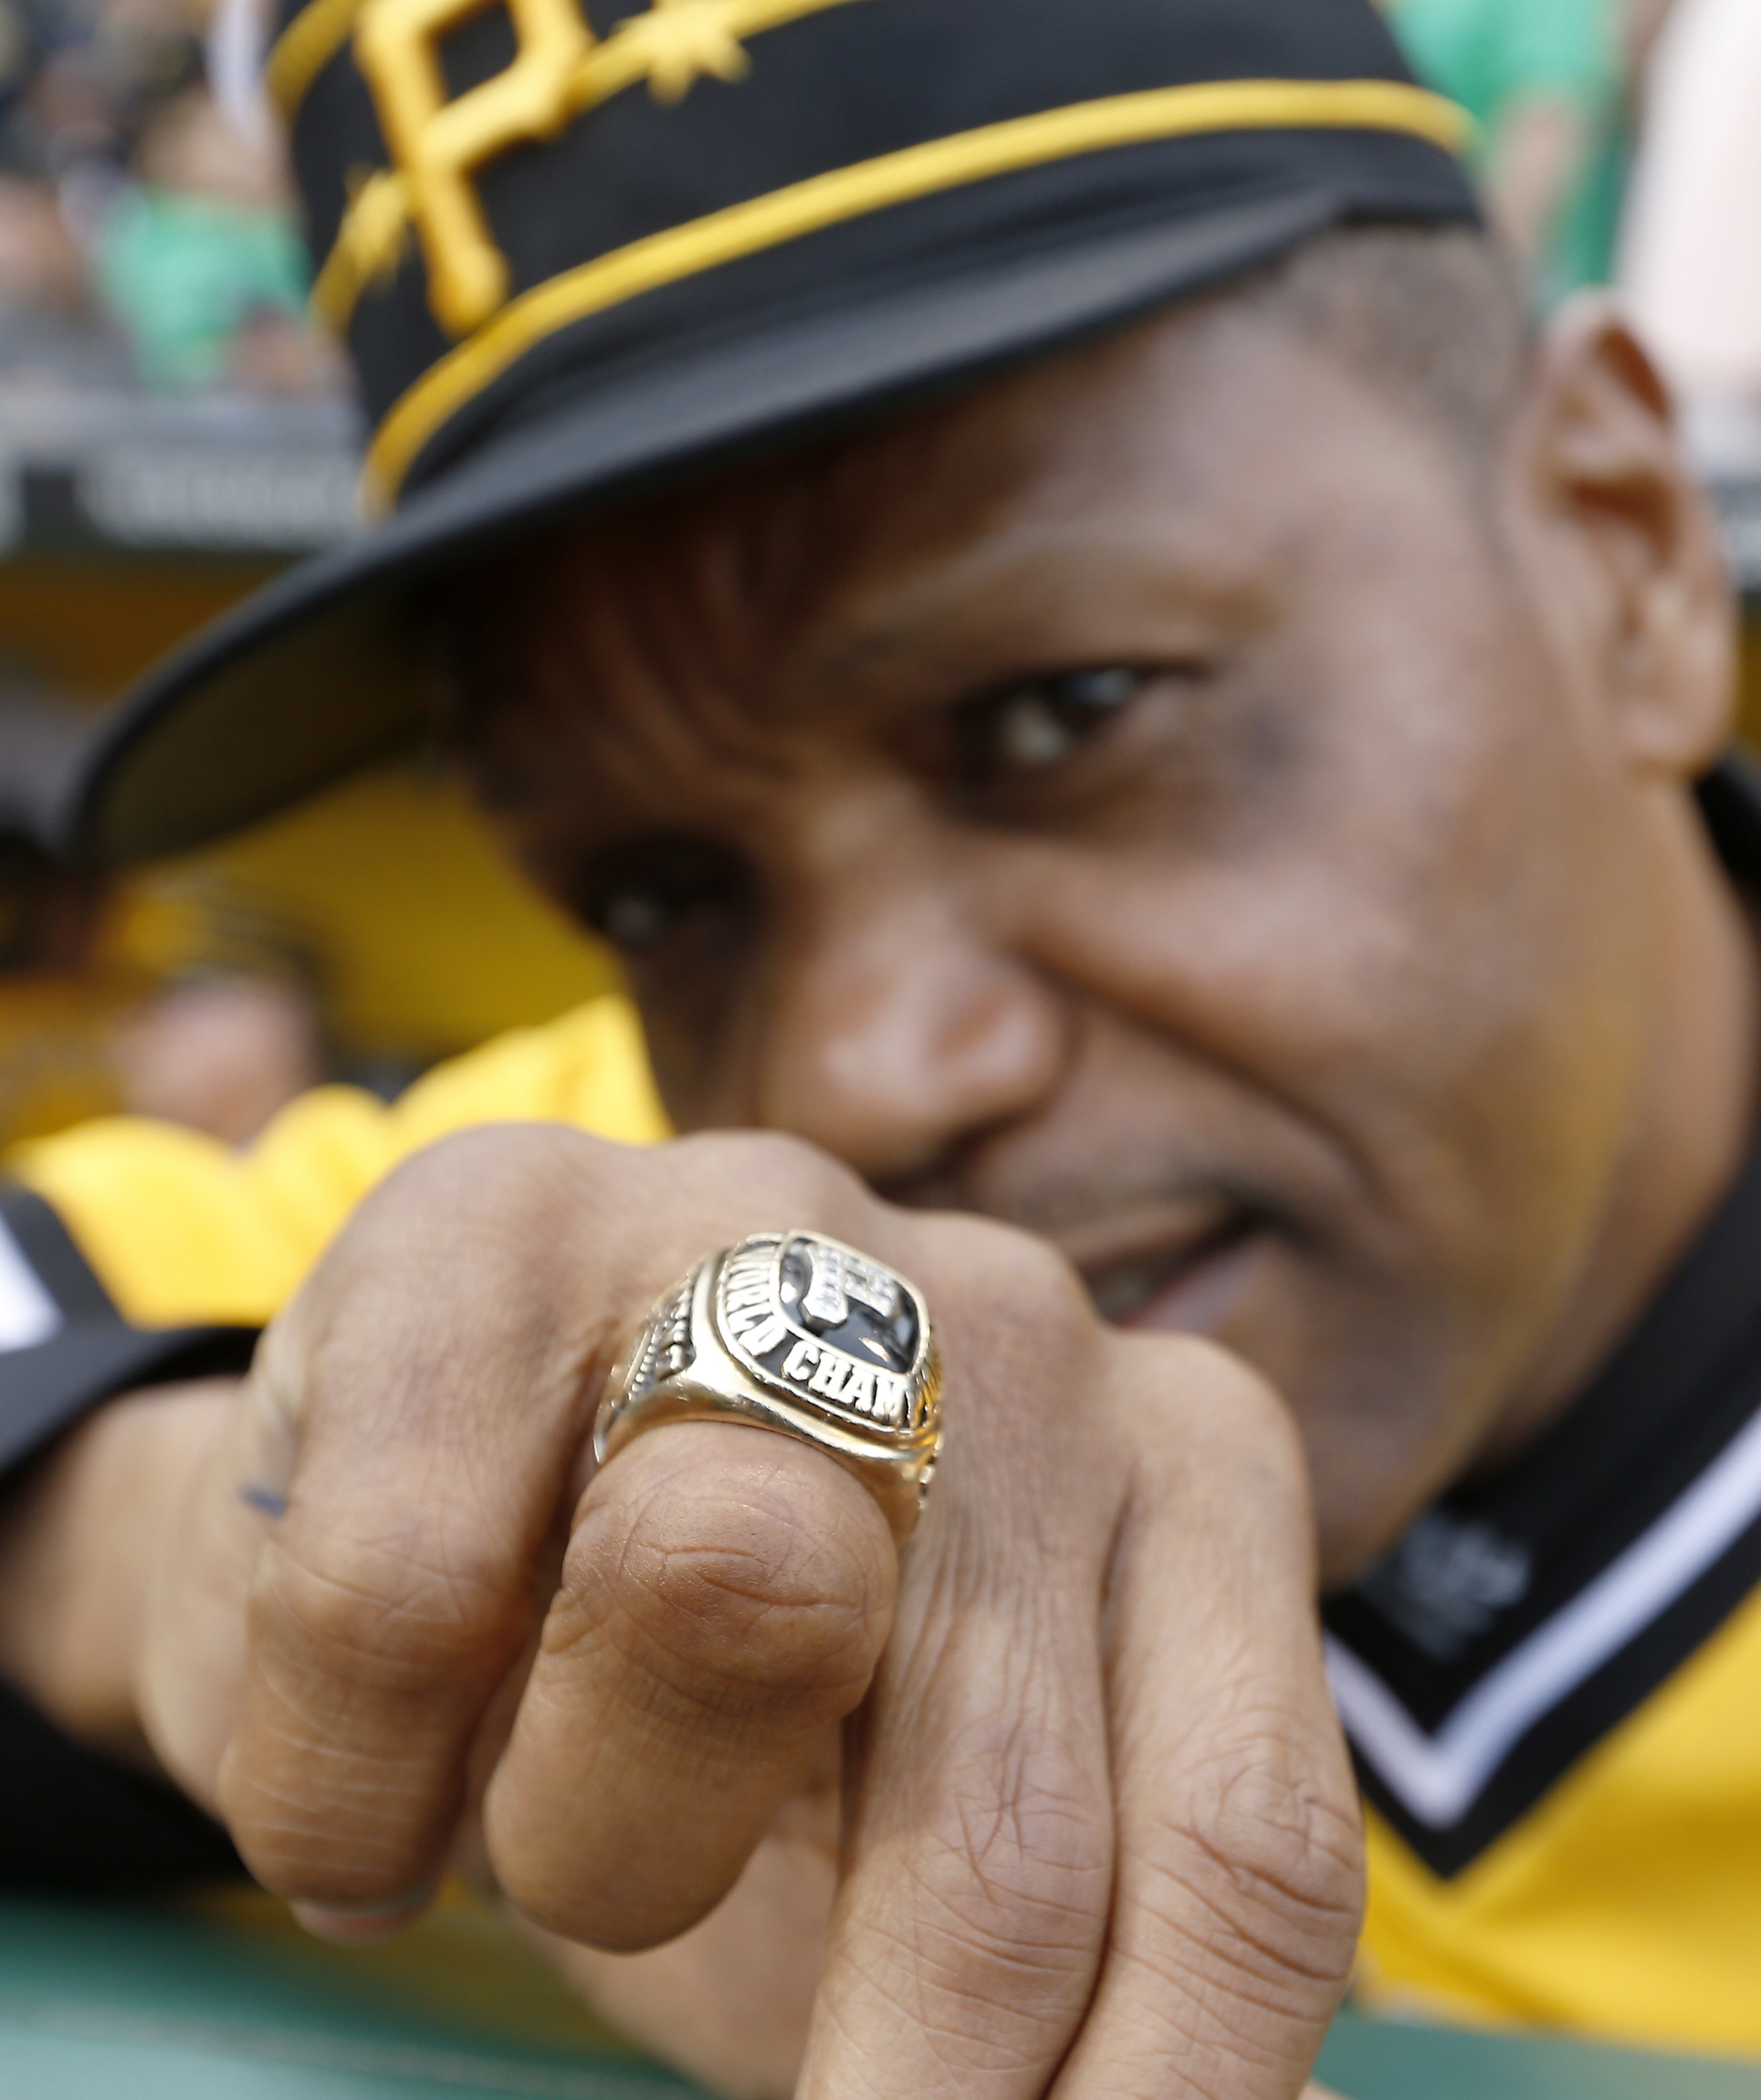 <div class='meta'><div class='origin-logo' data-origin='AP'></div><span class='caption-text' data-credit='AP Photo/Keith Srakocic'>Former Pittsburgh Pirates center fielder Omar Moreno shows off the World Series ring he won with the 1979 Pirates against the Baltimore Orioles.</span></div>